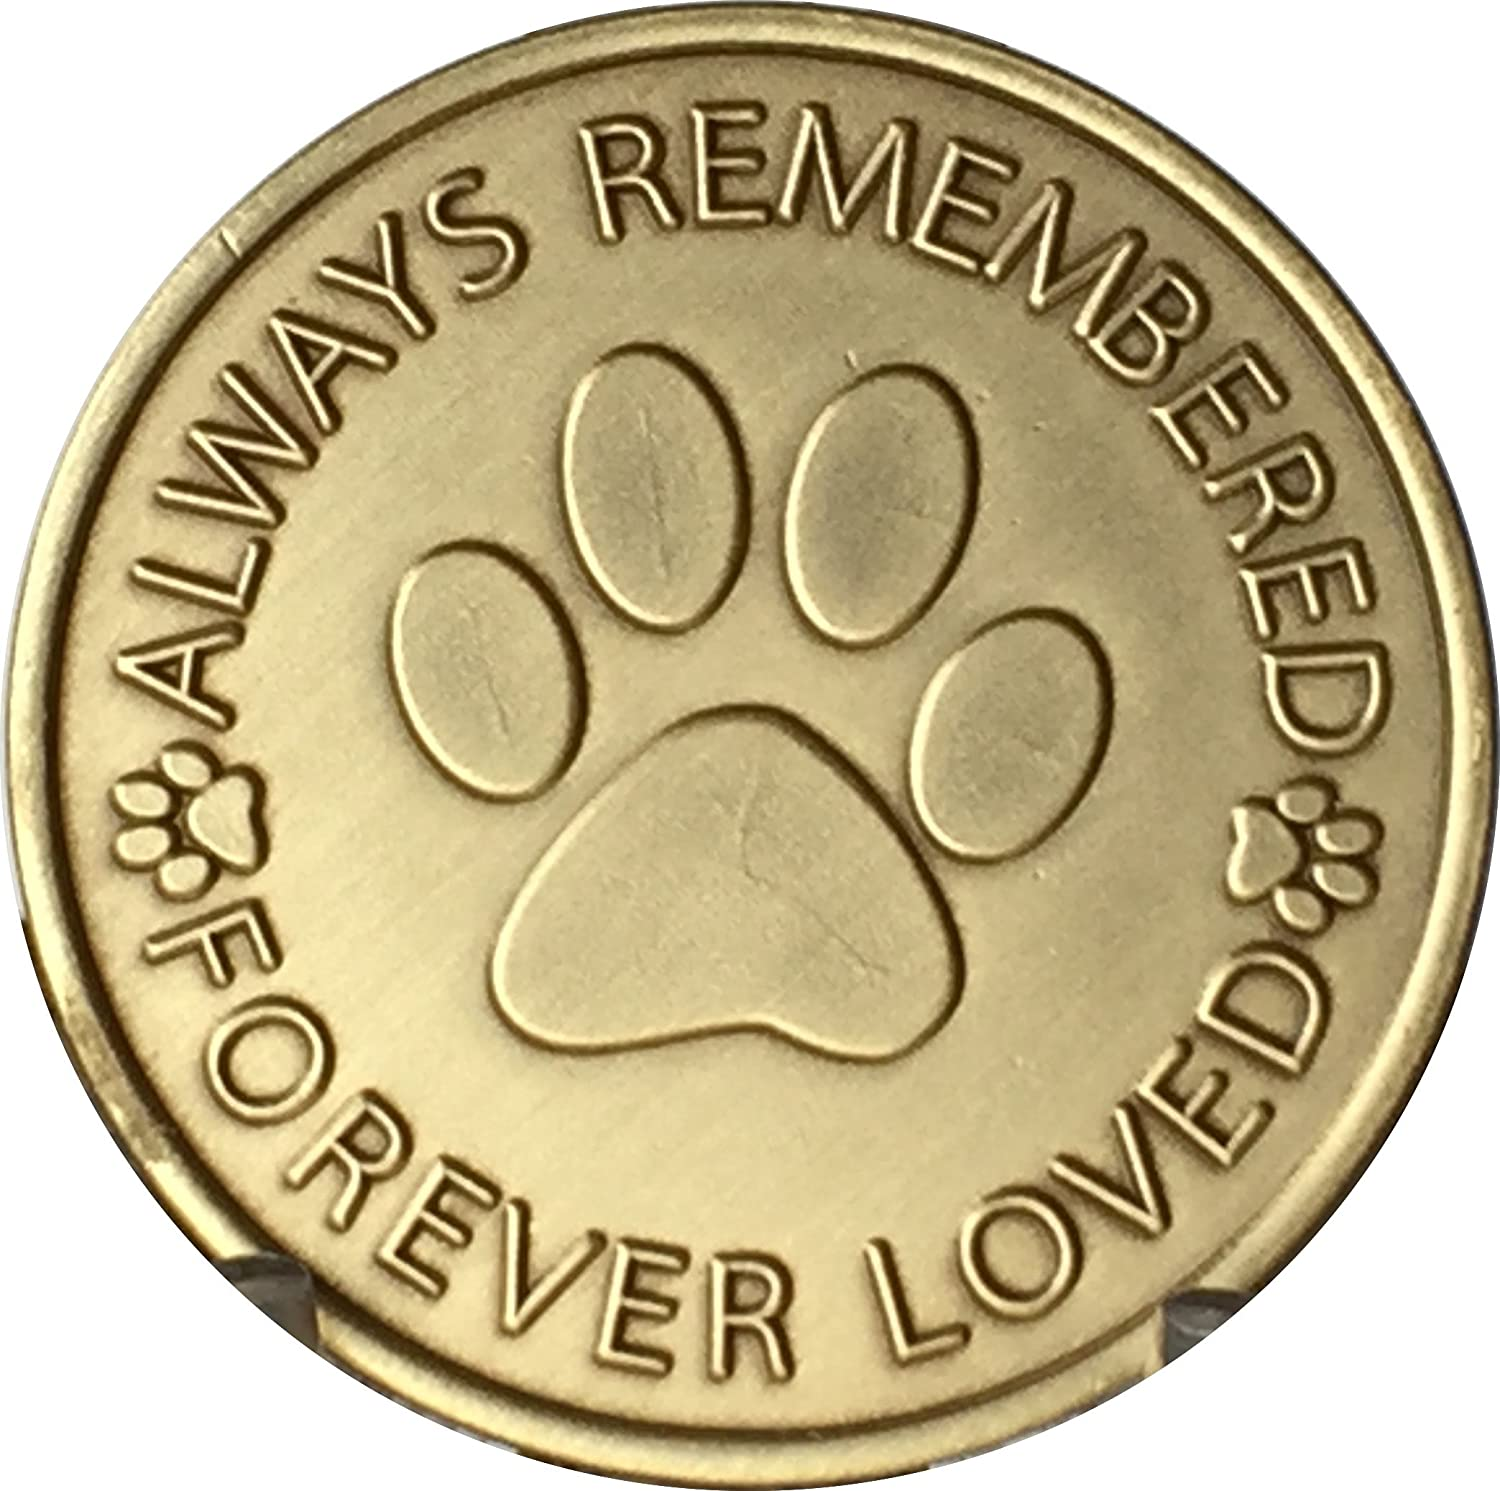 Always Remembered Forever Loved Pet Paw Print Dog Memorial Medallion Bronze Pocket Token RecoveryChip